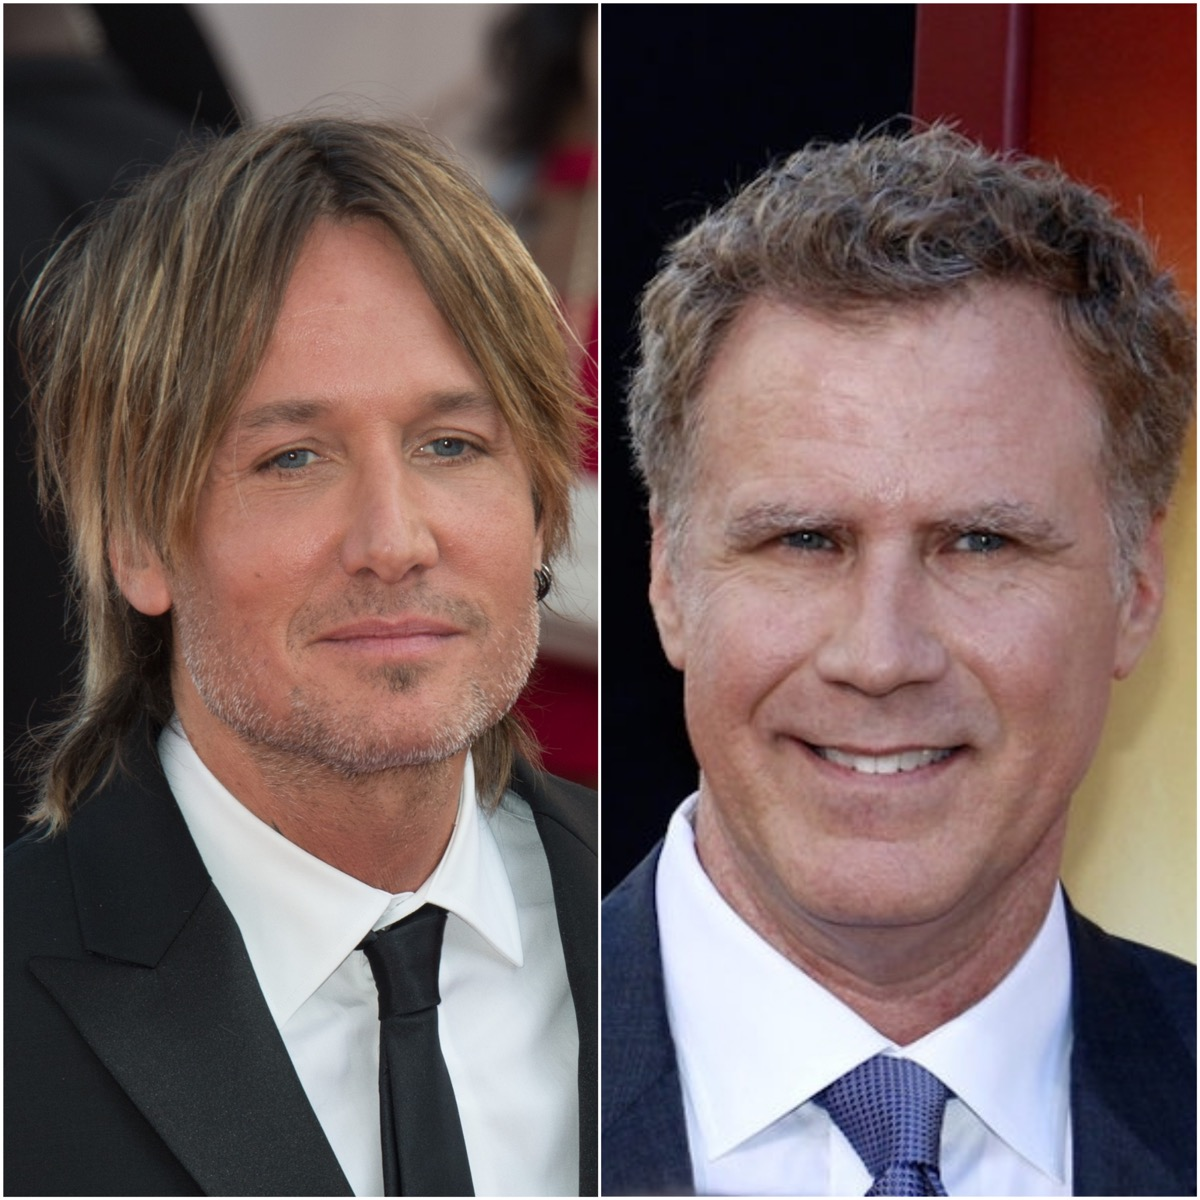 Keith Urban and Will Ferrell